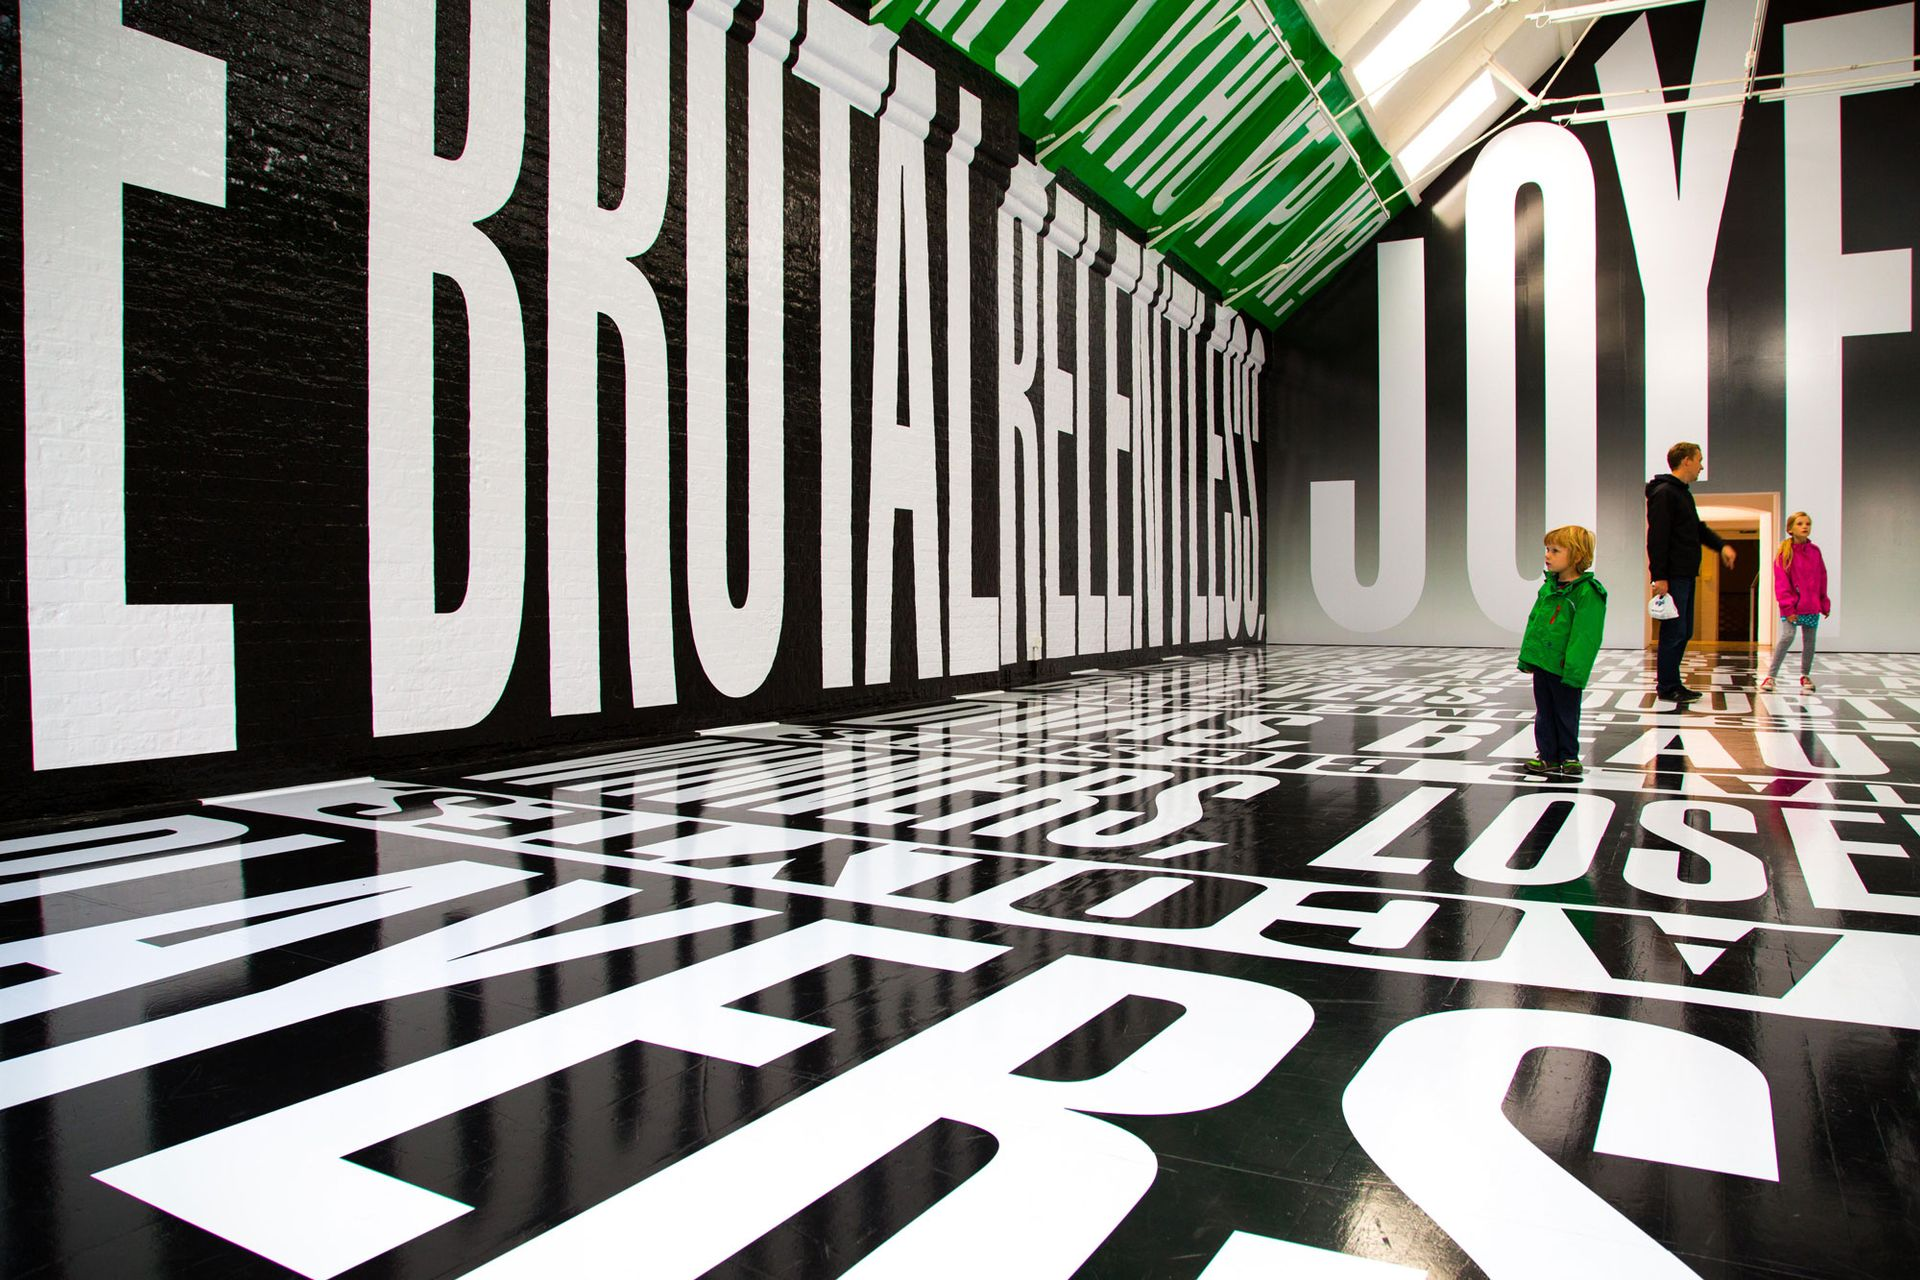 A Barbara Kruger exhibition at Modern Art Oxford, which has had to pause its £2.5m capital campaign for a building refurbishment amid funding uncertainty due to coronavirus Photo: Elly Godfroy/Alamy